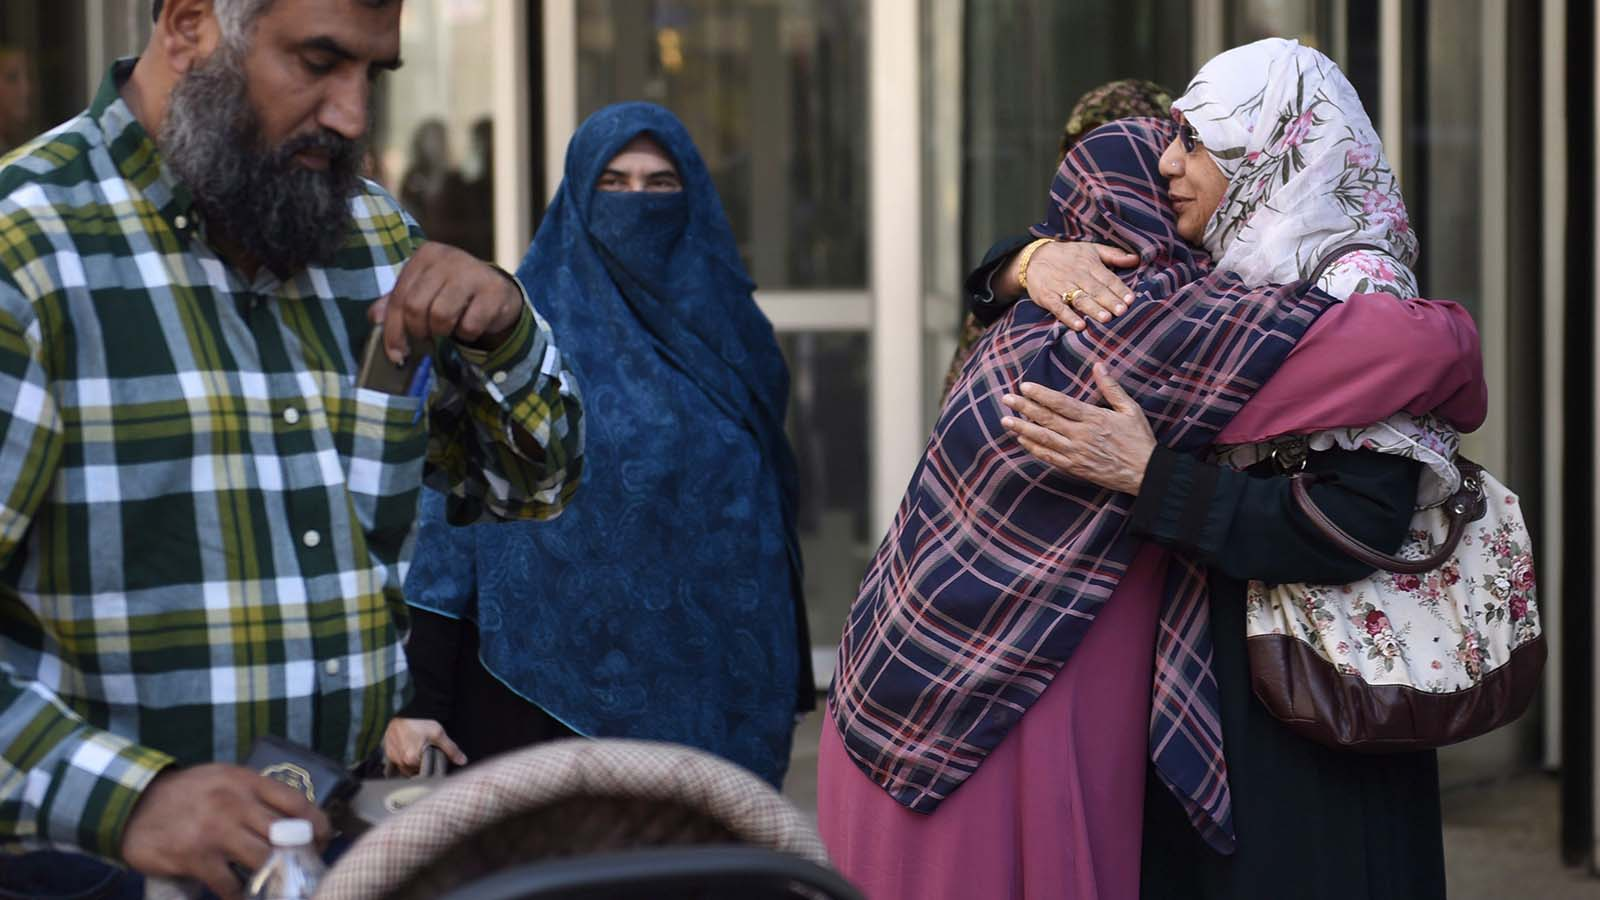 Zunera Ishaq (second from right) is embraced by her friend Nusrat Wahid after the Federal Court of Appeal overturned a ban on the wearing niqabs at citizenship ceremonies, in Ottawa on Tuesday, Sept. 15, 2015. (Justin Tang/CP)